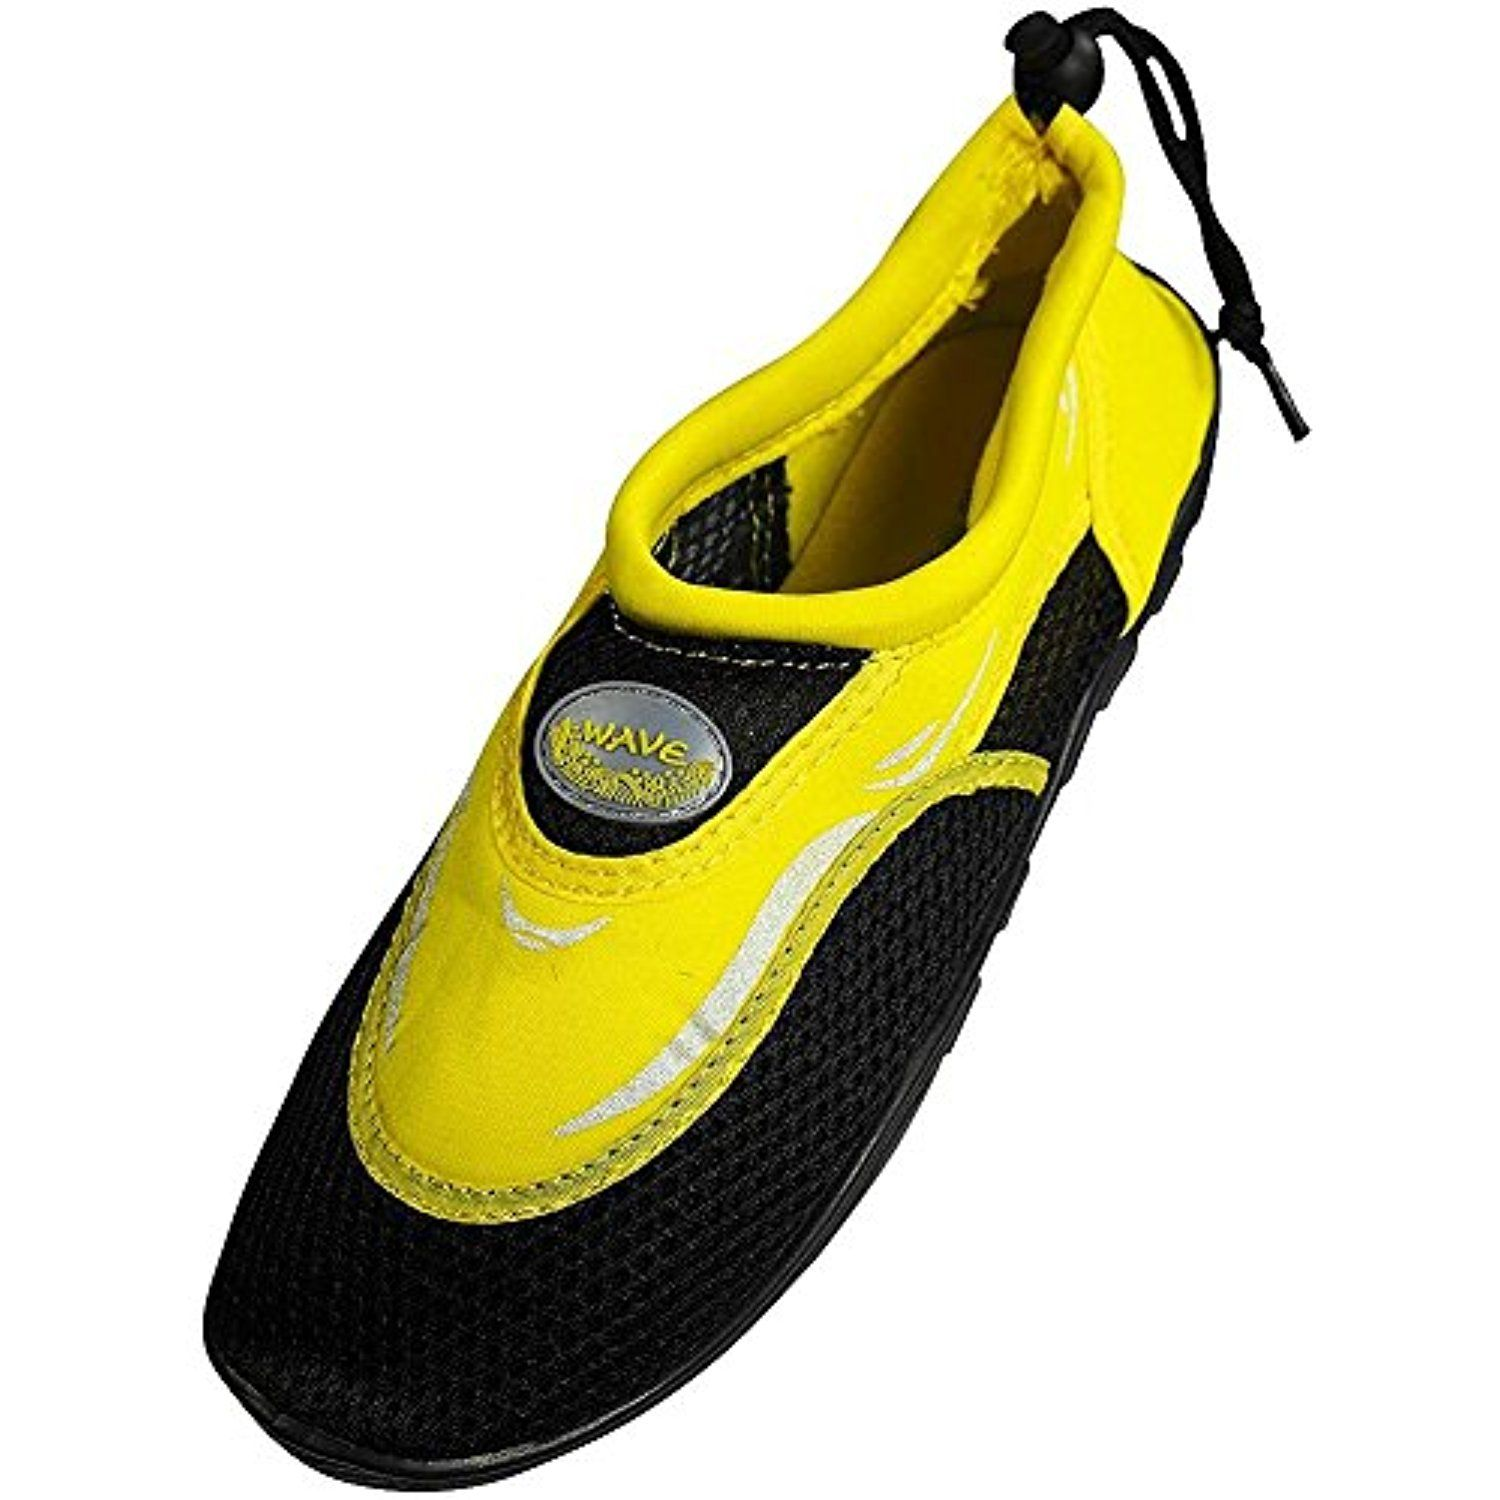 The Wave Mens Waterproof Water Shoes